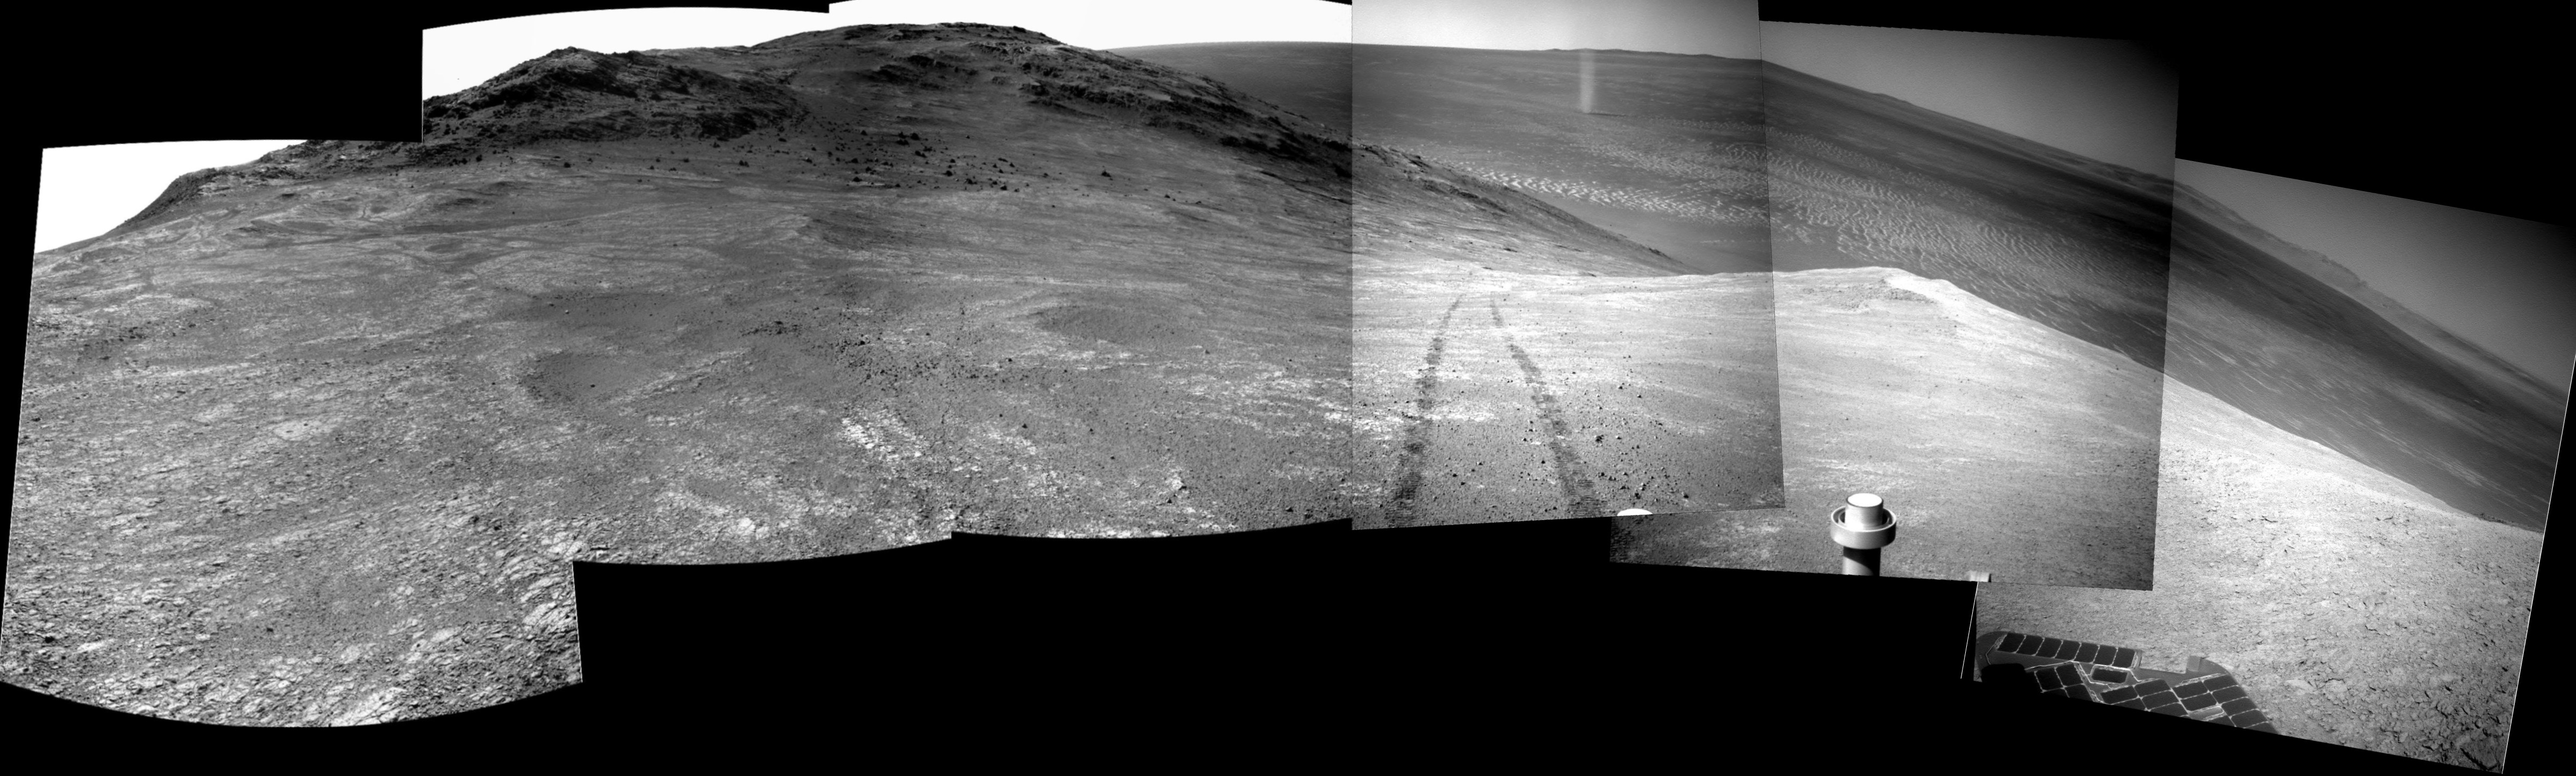 Nav 4332 Marathon Valley et Dust Devil